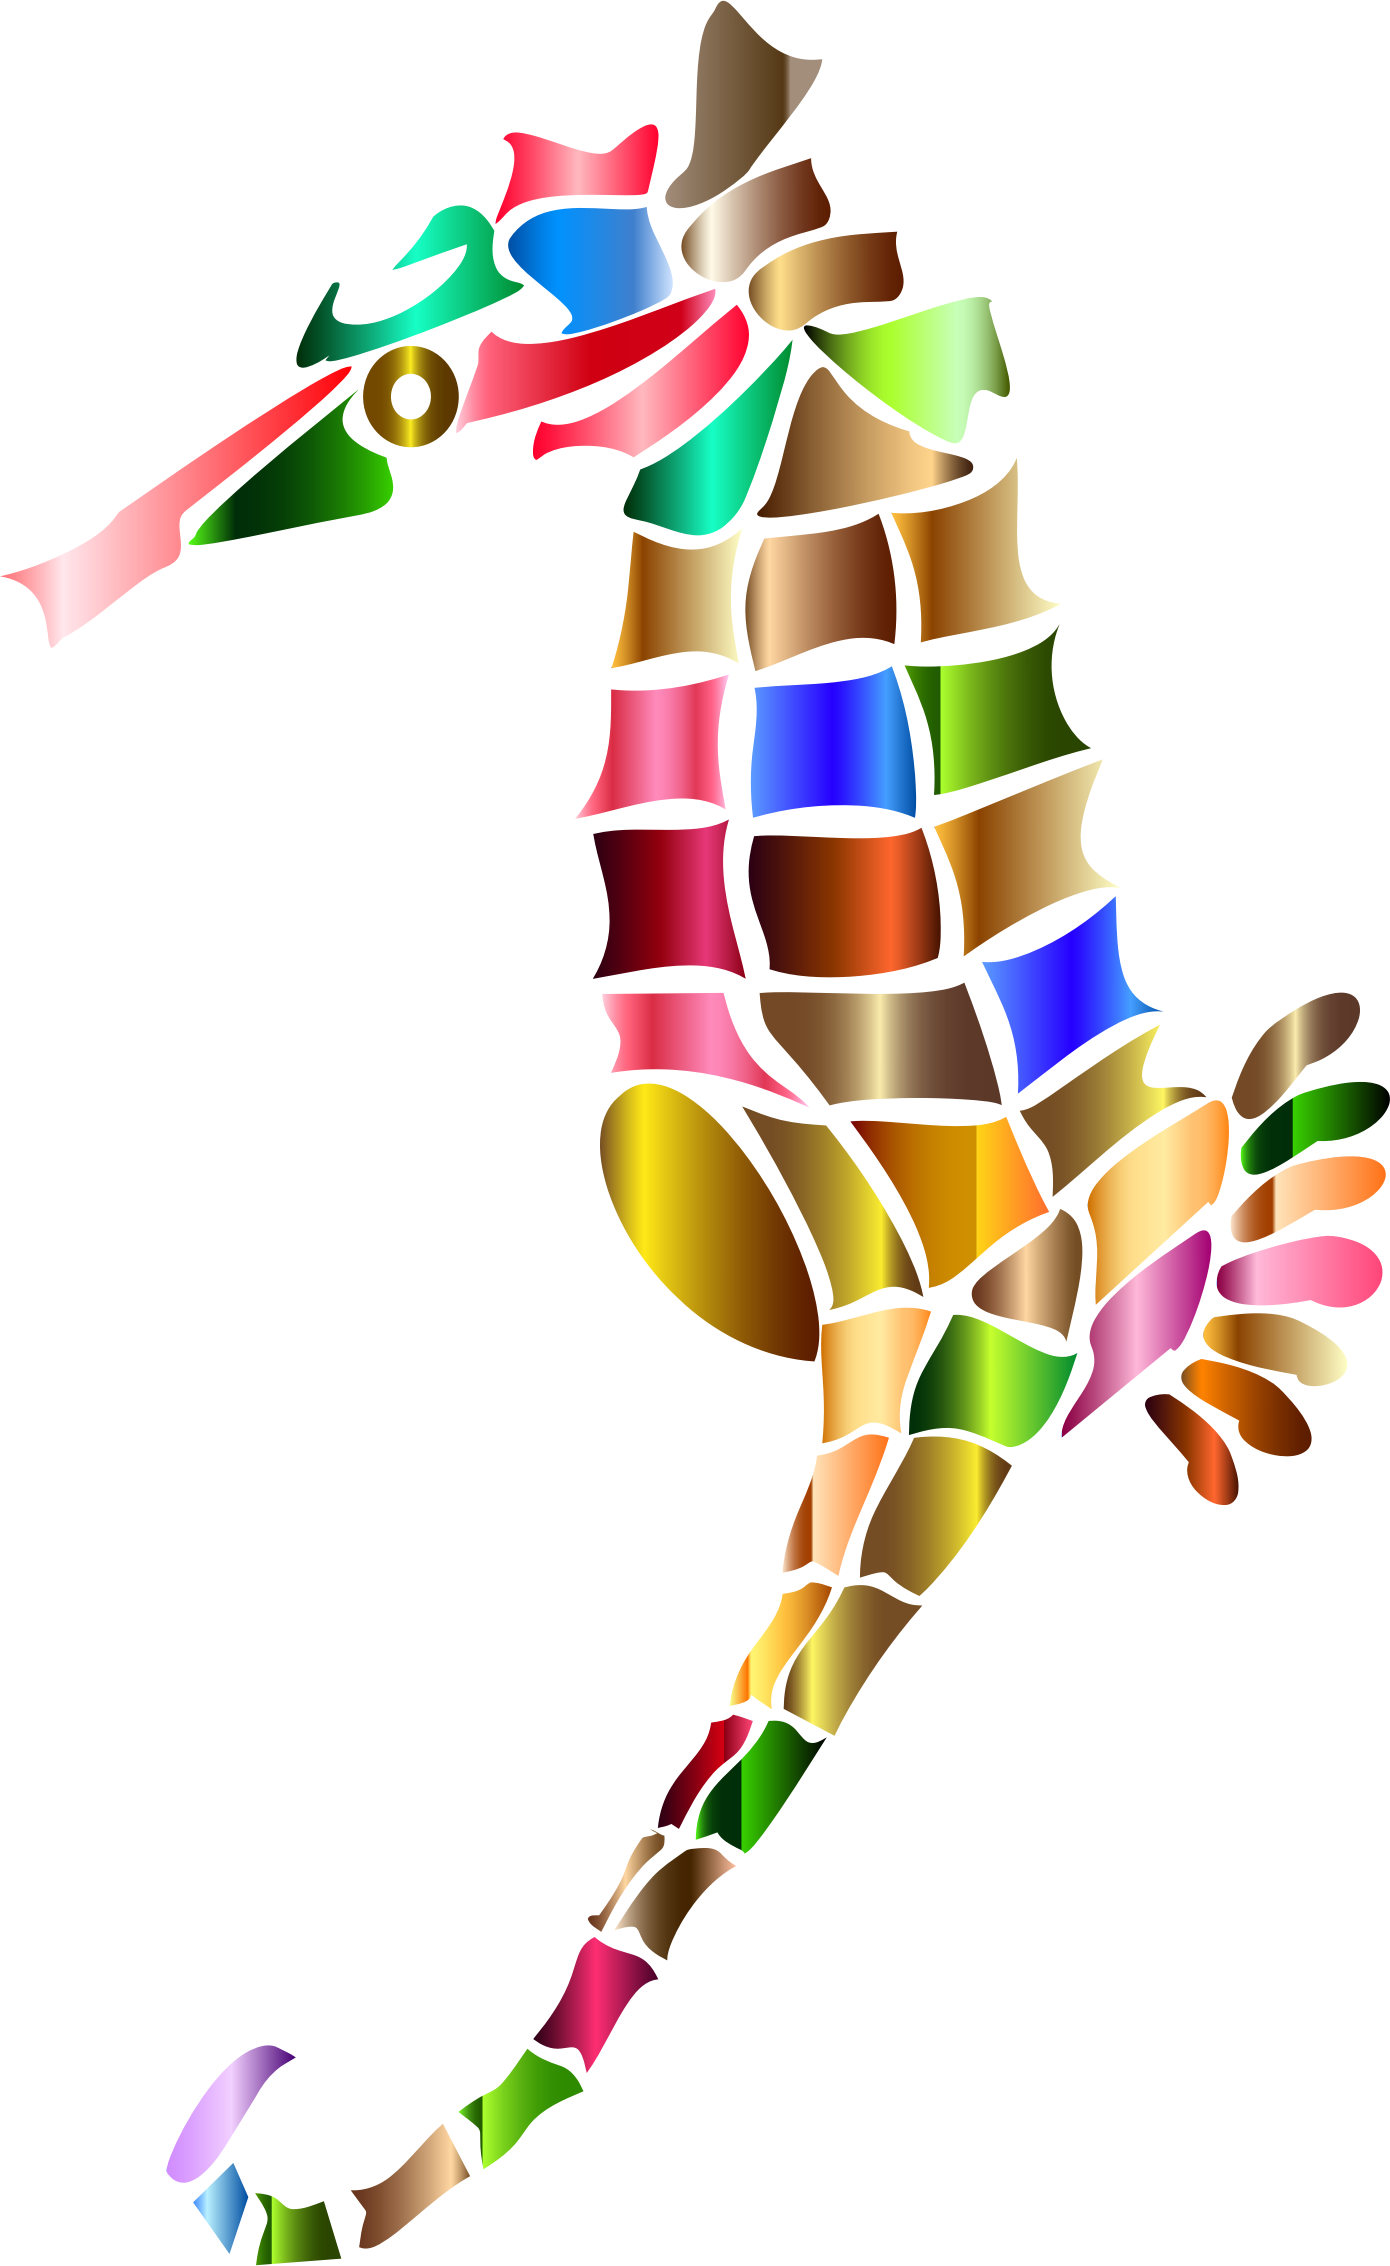 Prismatic Stylized Seahorse Silhouette 5 by GDJ